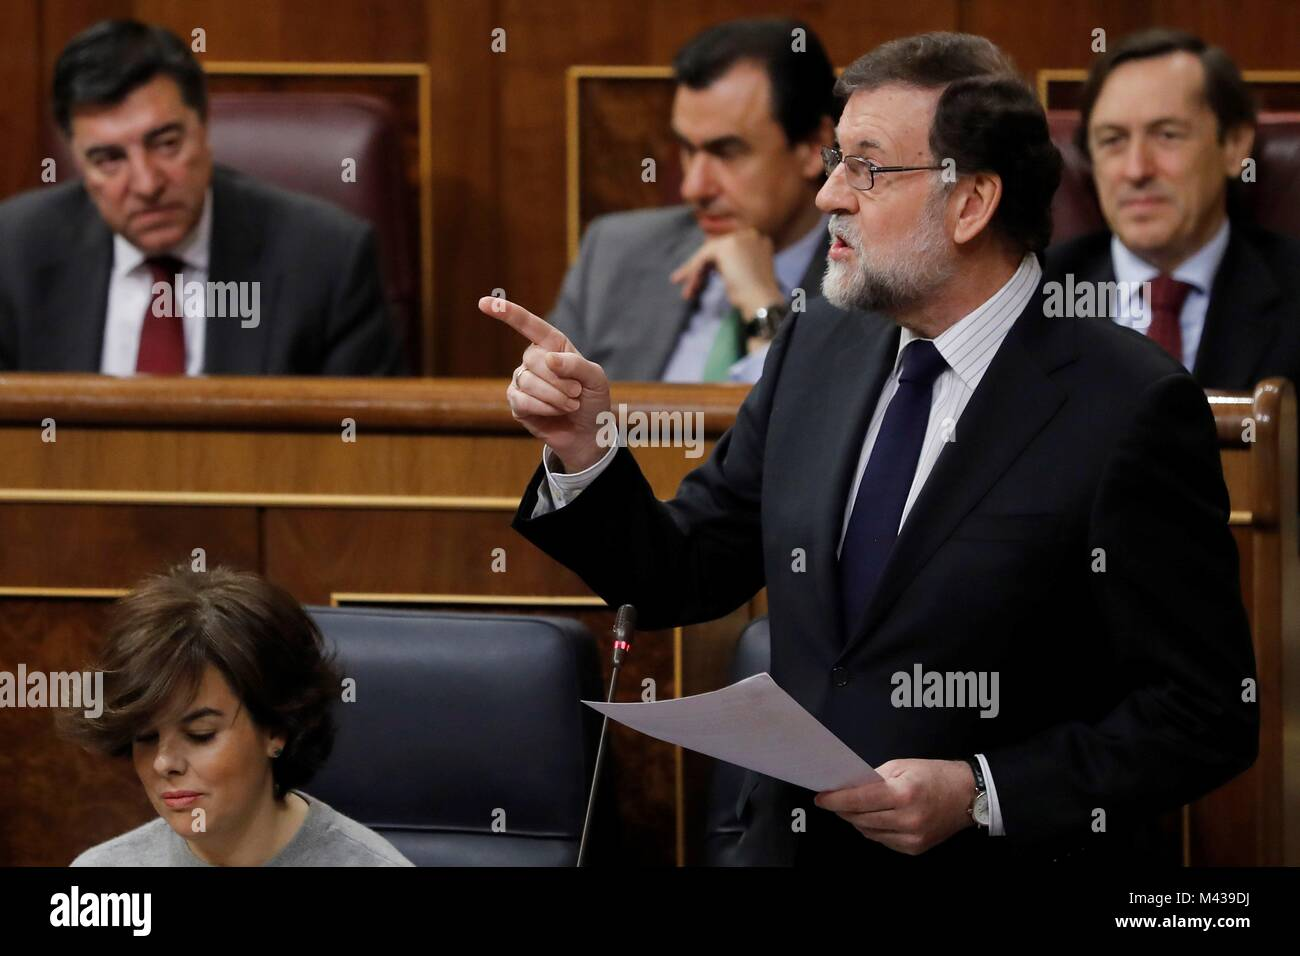 Madrid, Spain. 14th Feb, 2018. Spanish Prime Minister, Mariano Rajoy (R), answers a question next to Deputy Prime - Stock Image